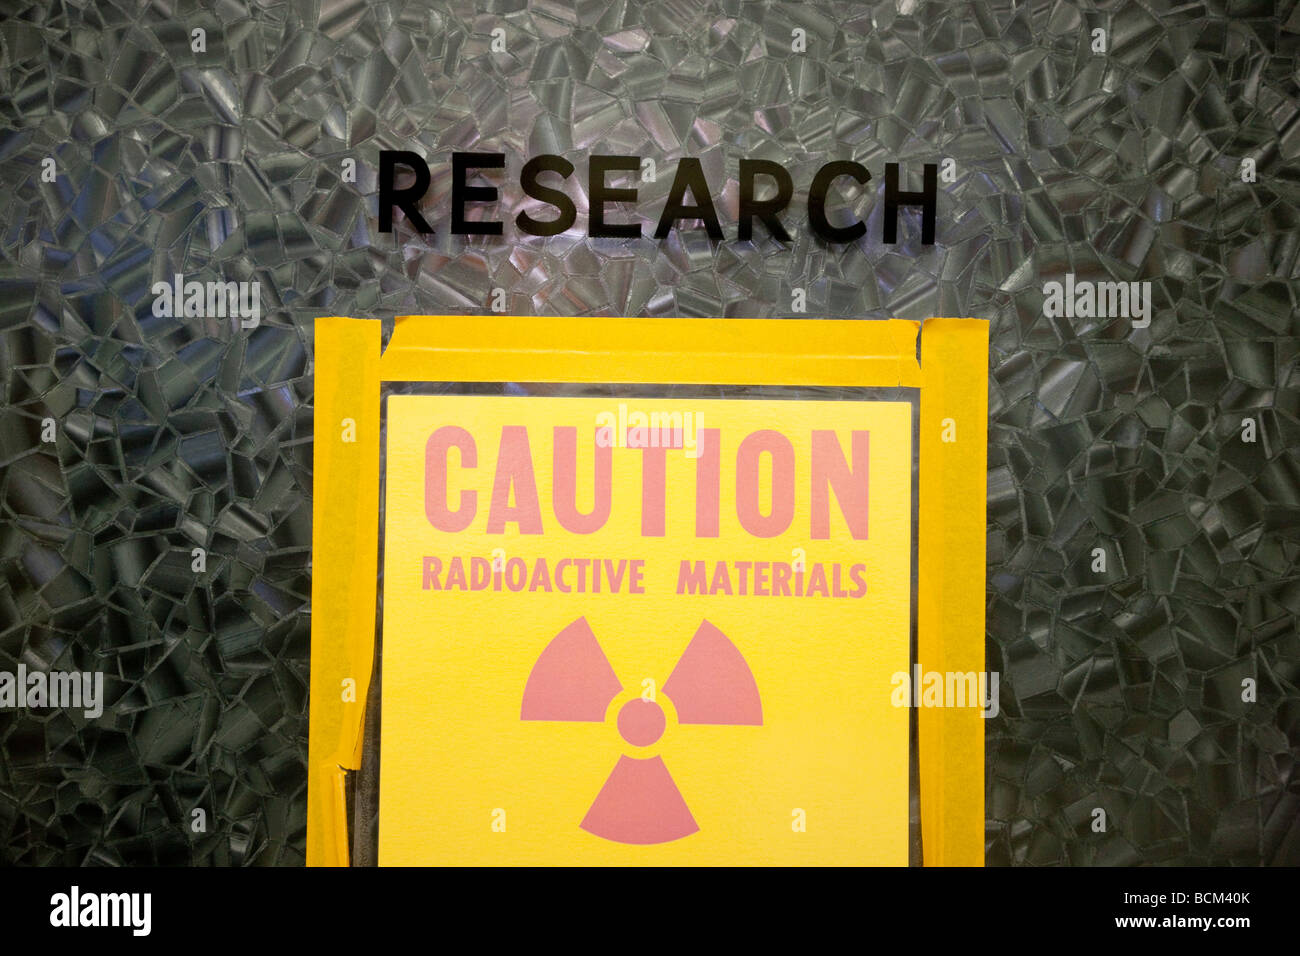 Door into a Research Laboratory with a Caution Radioactive Materials sign - Stock Image